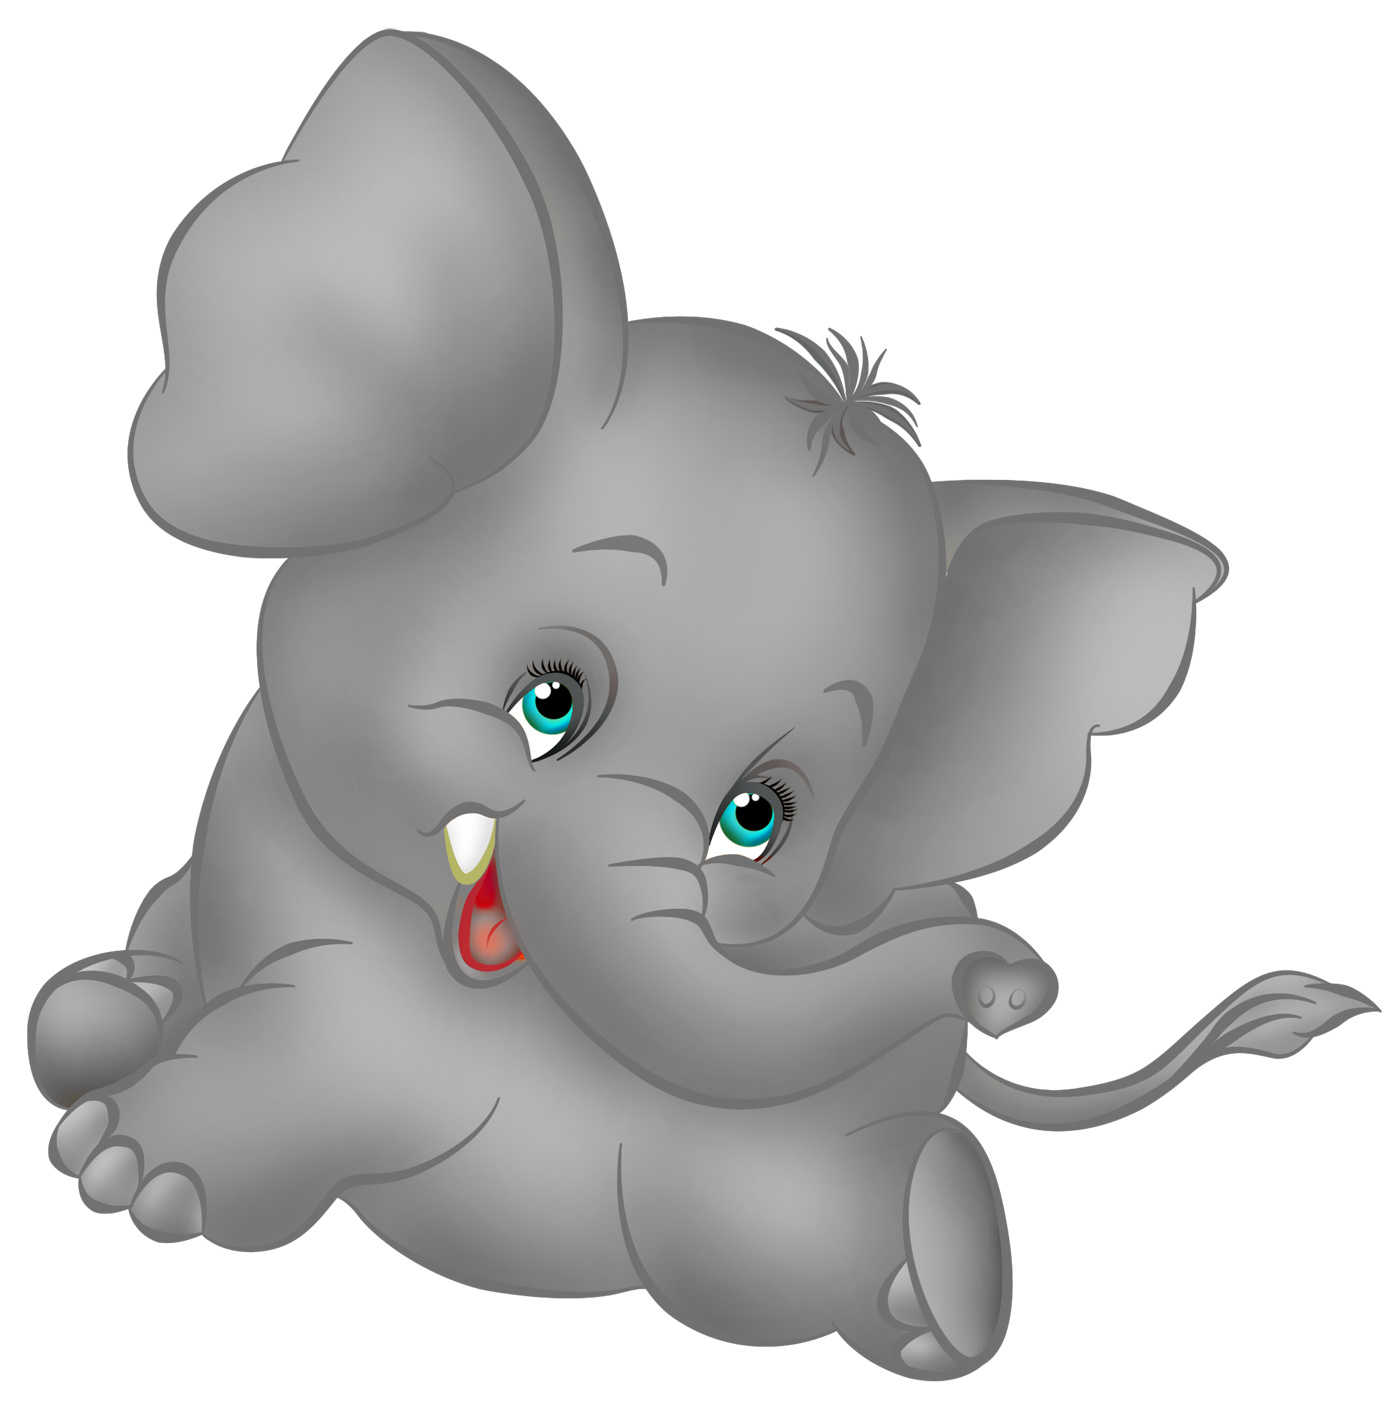 Grey Elephant Cartoon Free Clipart